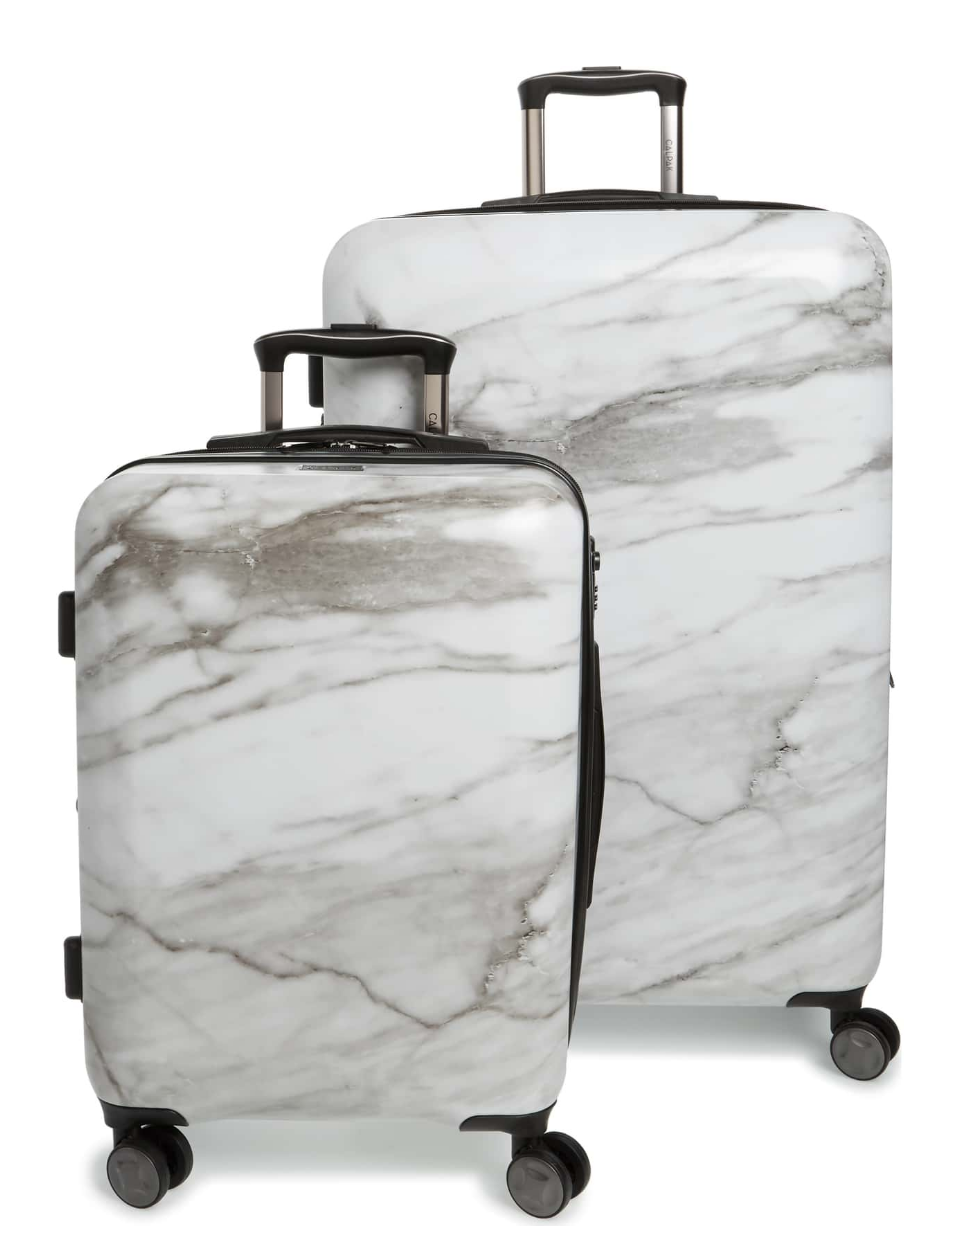 ASTYLL 22-INCH & 30-INCH SPINNER LUGGAGE SET